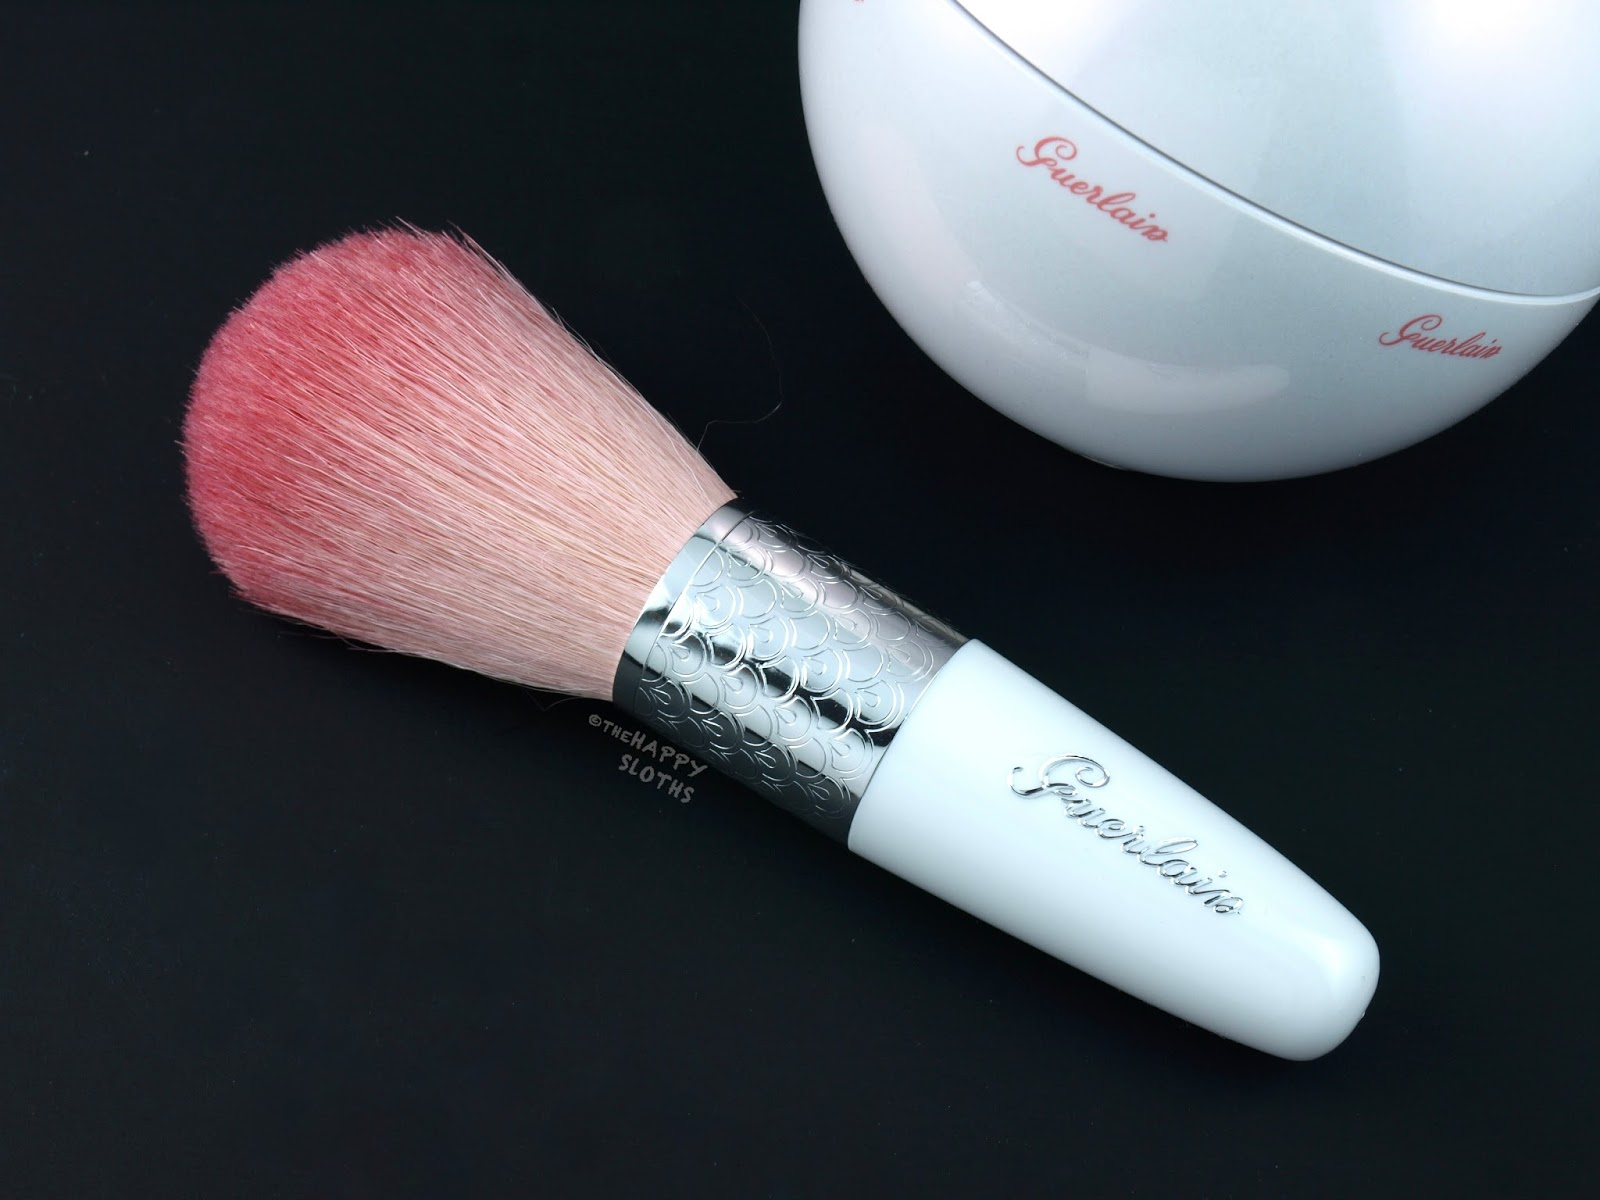 Guerlain Meteorites Powder Brush Review